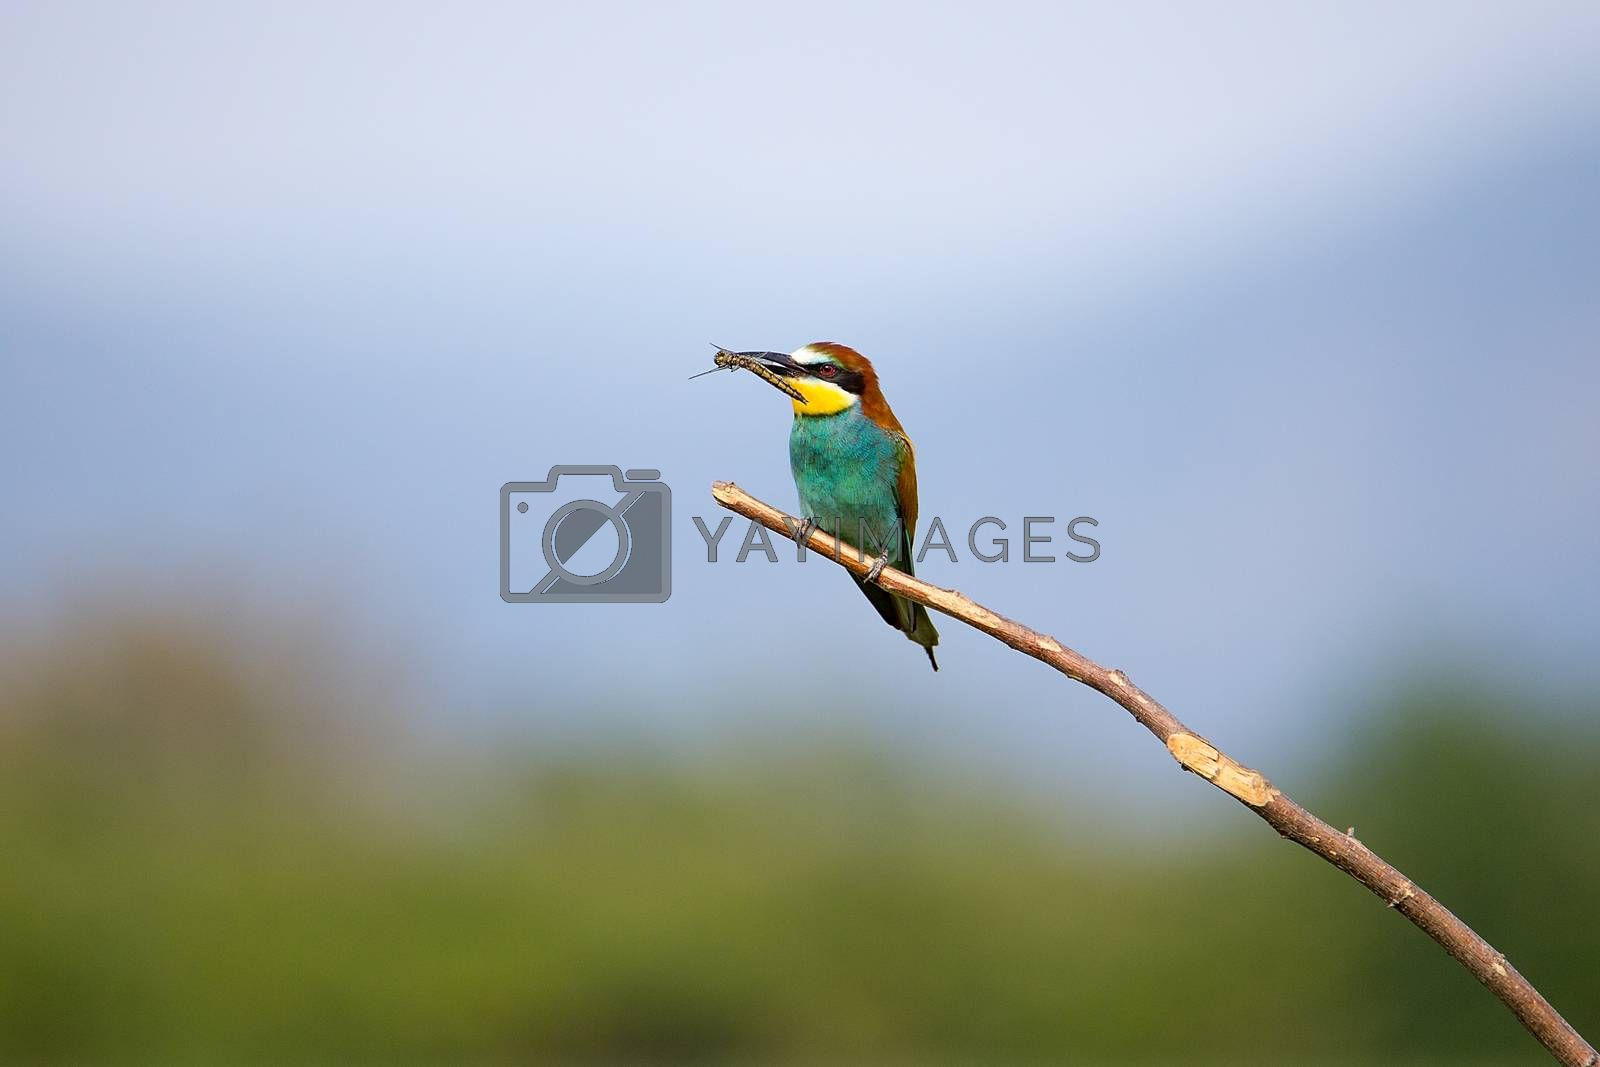 Bee-eater playing with insect (Merops apiaster) on brunch - tropical colours bird, Isola della Cona, Monfalcone, Italy, Europe